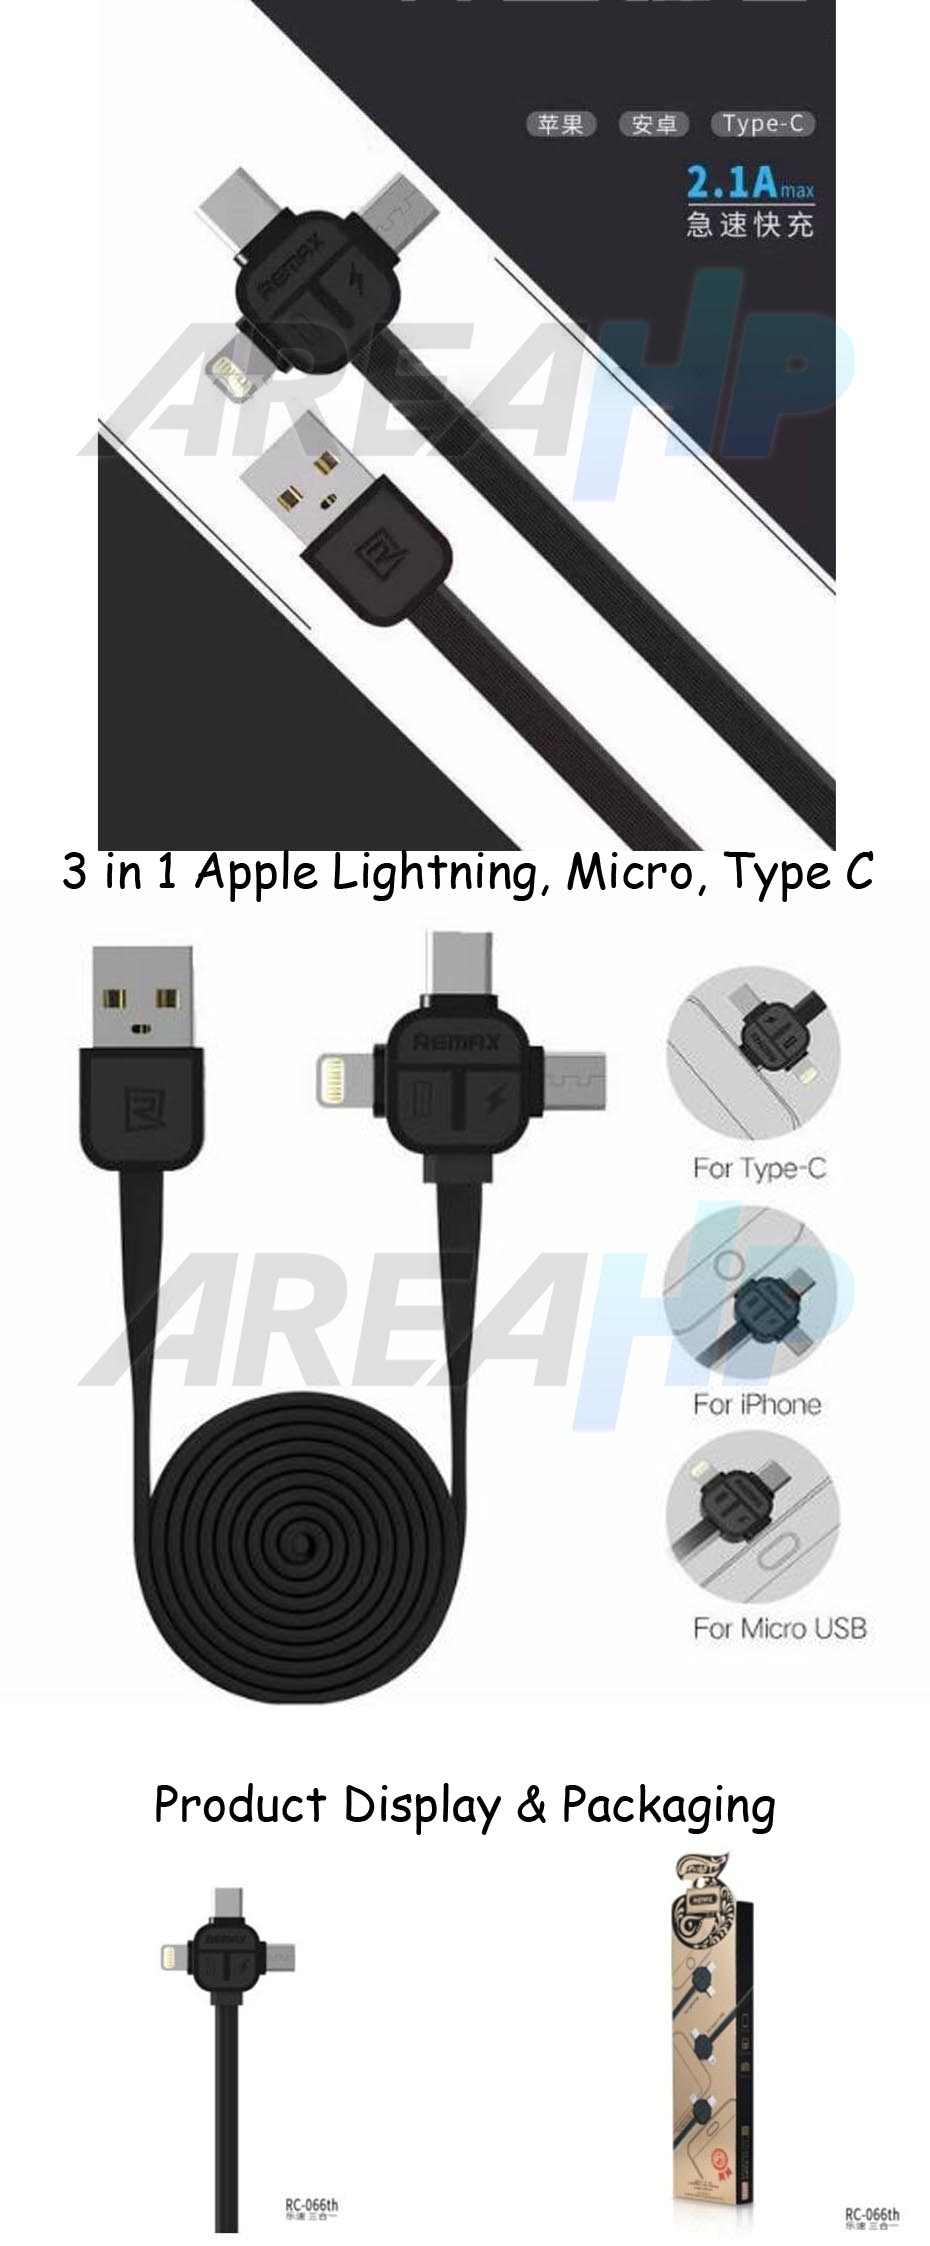 Remax Lesu 3in1 Apple Lightning, Micro, Type C USB Cable 1M RC-066TH Overview